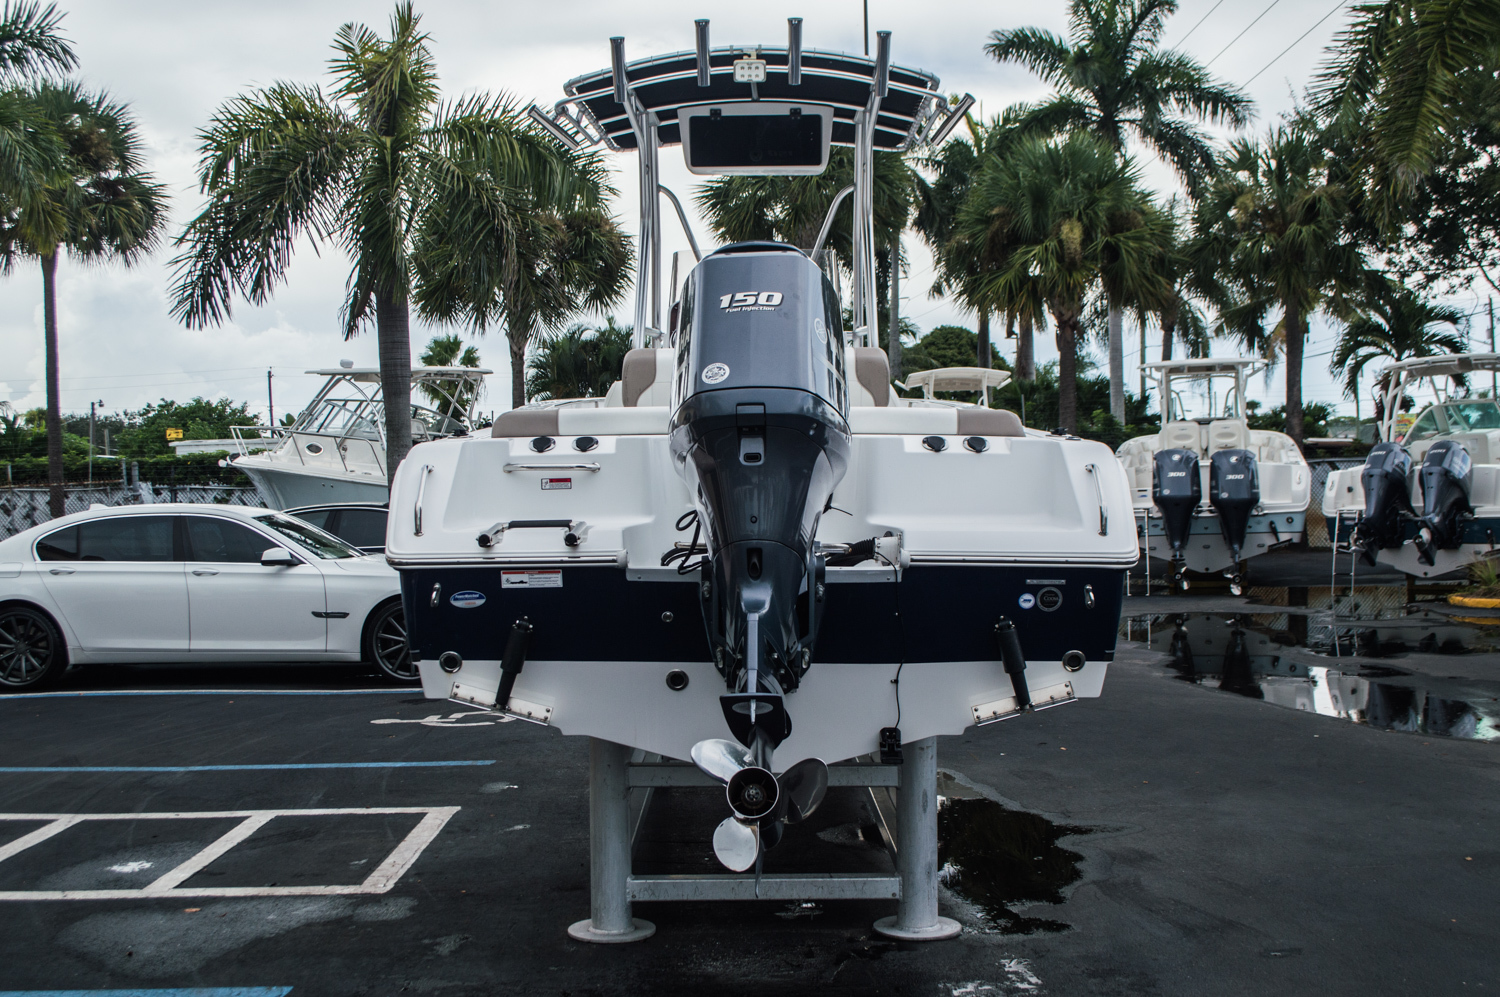 Thumbnail 6 for Used 2012 Sea Hunt 211 Ultra boat for sale in West Palm Beach, FL